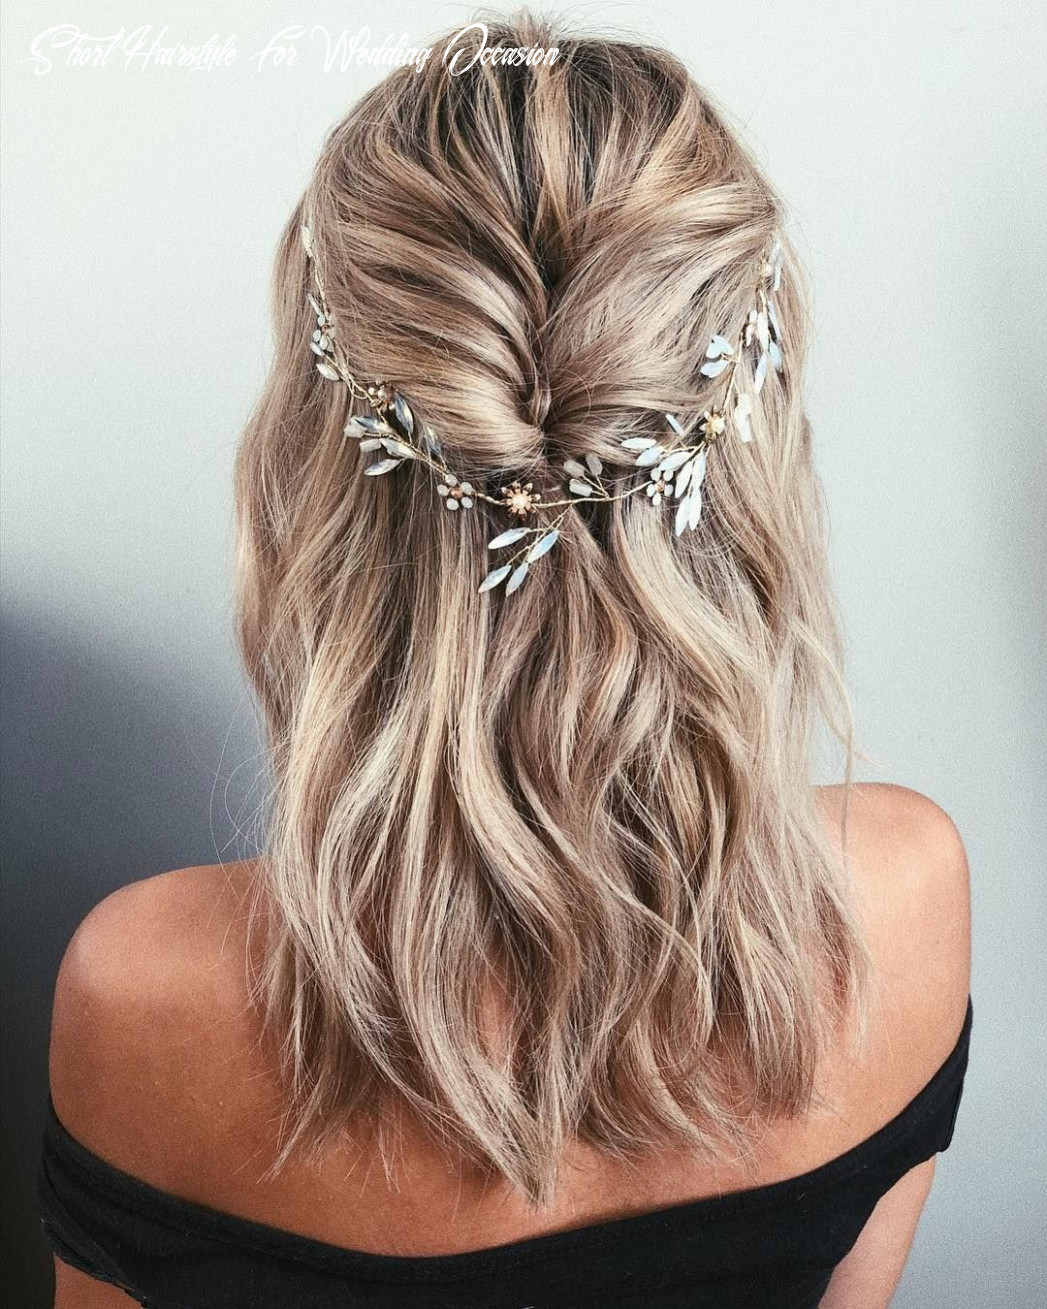 8 special occasion hairstyles for long hair | simple wedding